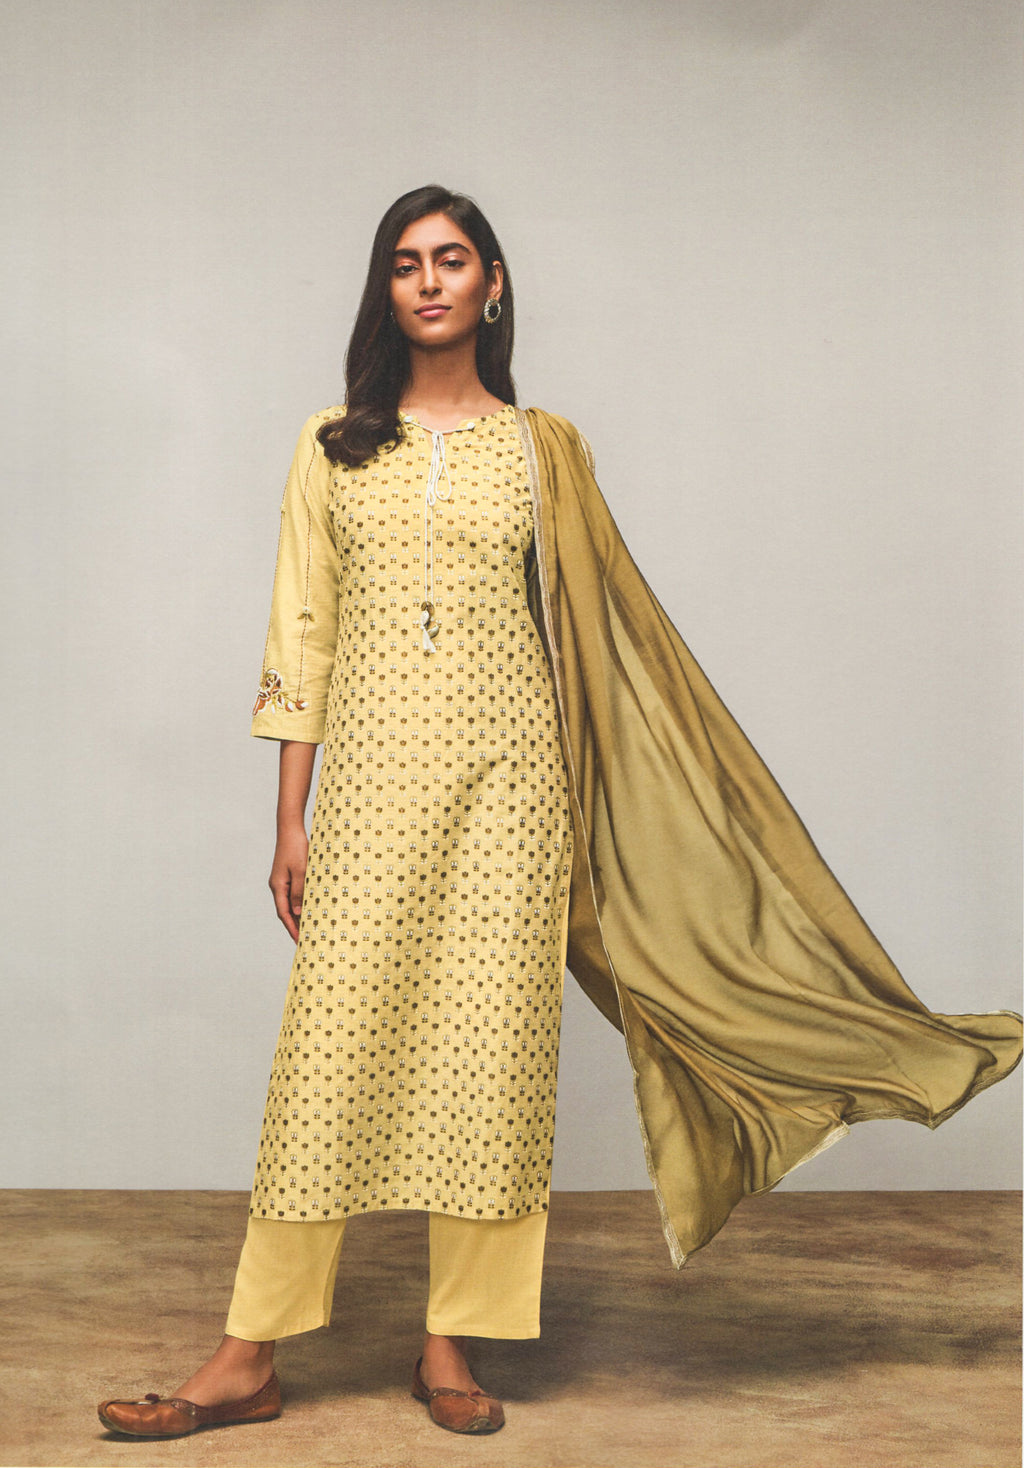 Four Buttons Lemon Cotton Silk Long Kurti (Yellow) By Indians Boutique